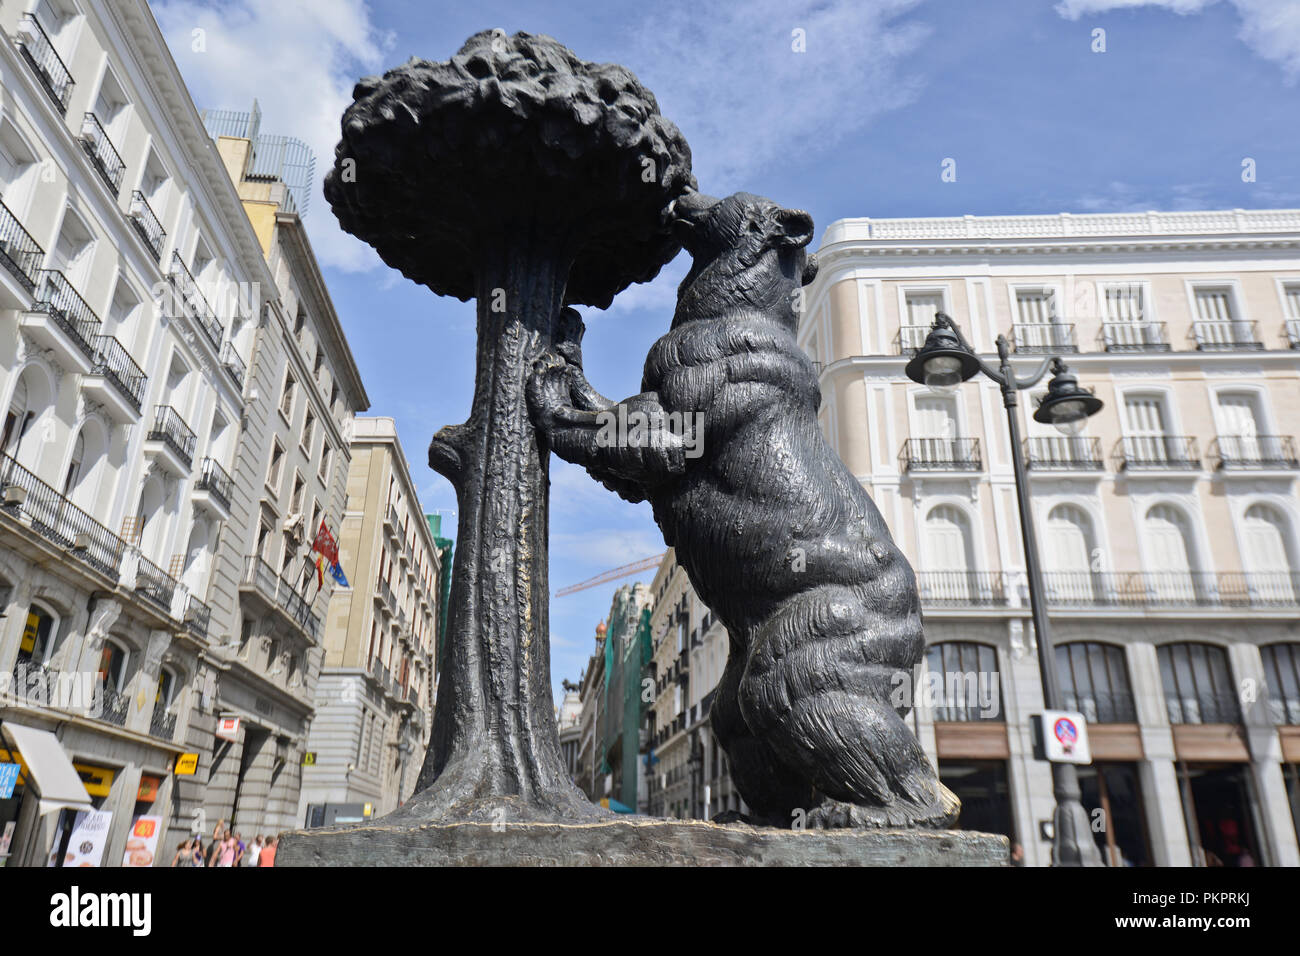 Statue of the Bear and the Strawberry Tree. Plaza Mayor (Main Square), Madrid, Spain - Stock Image